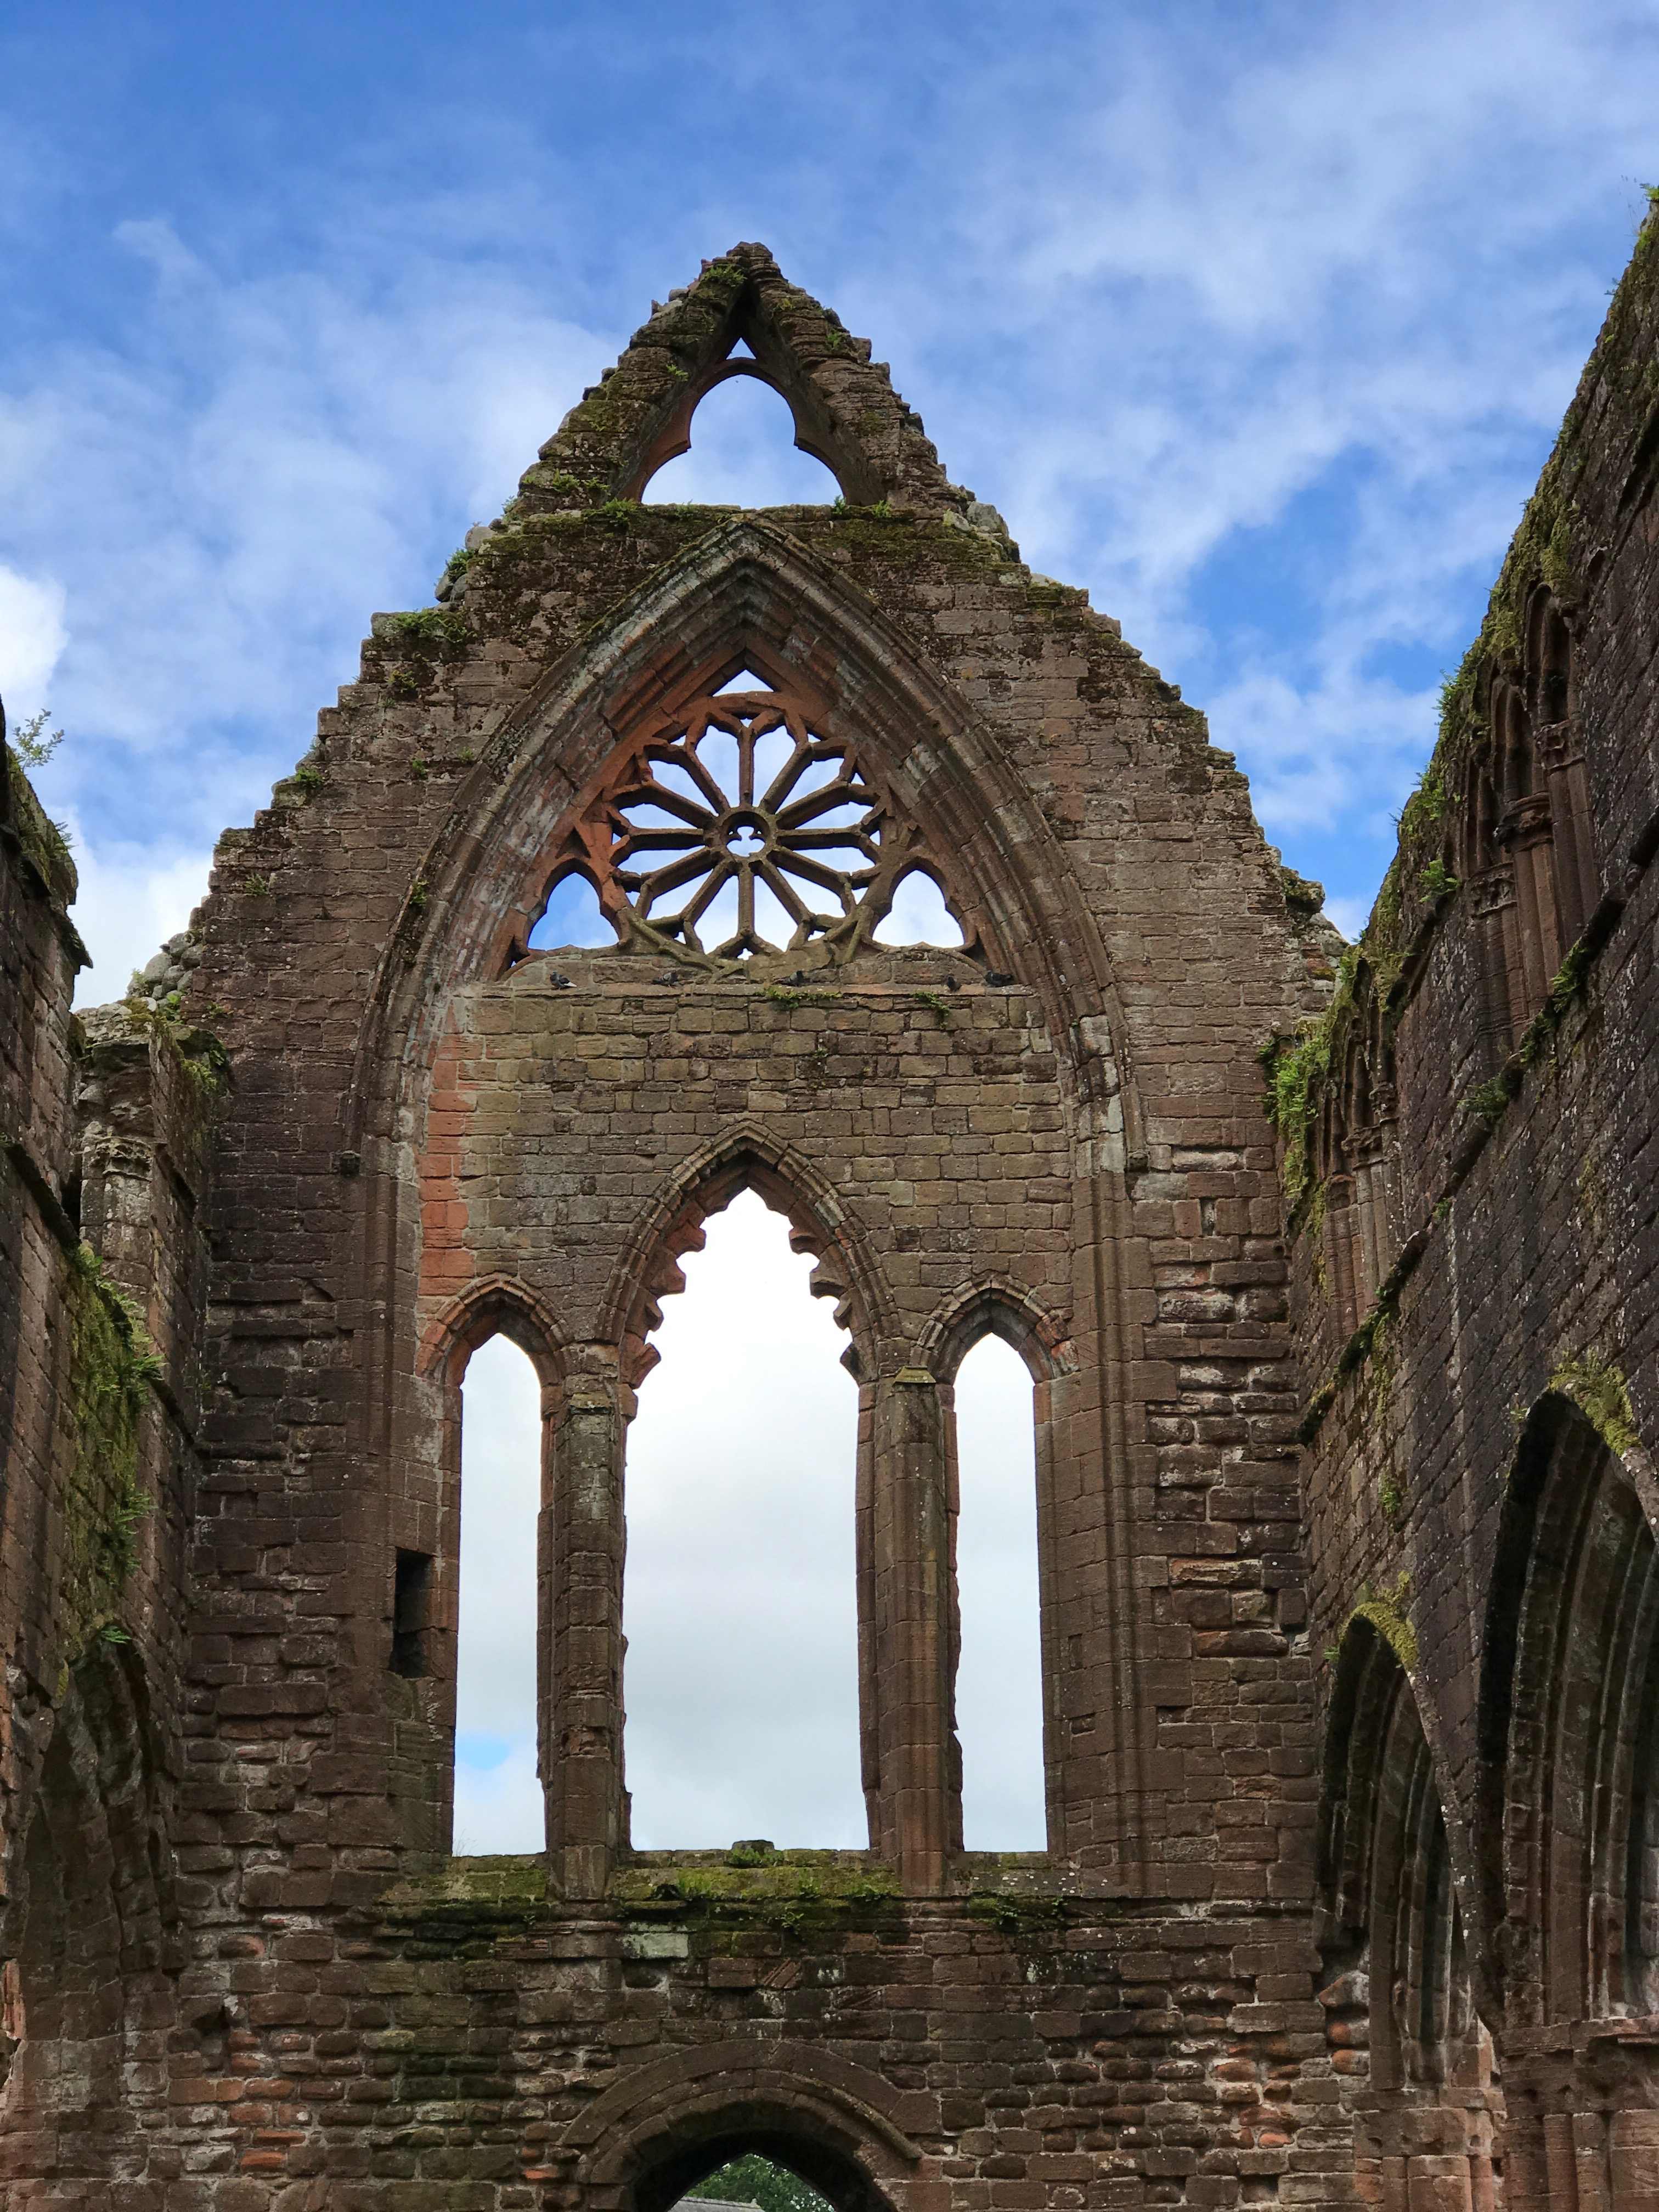 Where are we going?2 Sweetheart Abbey2 - 1